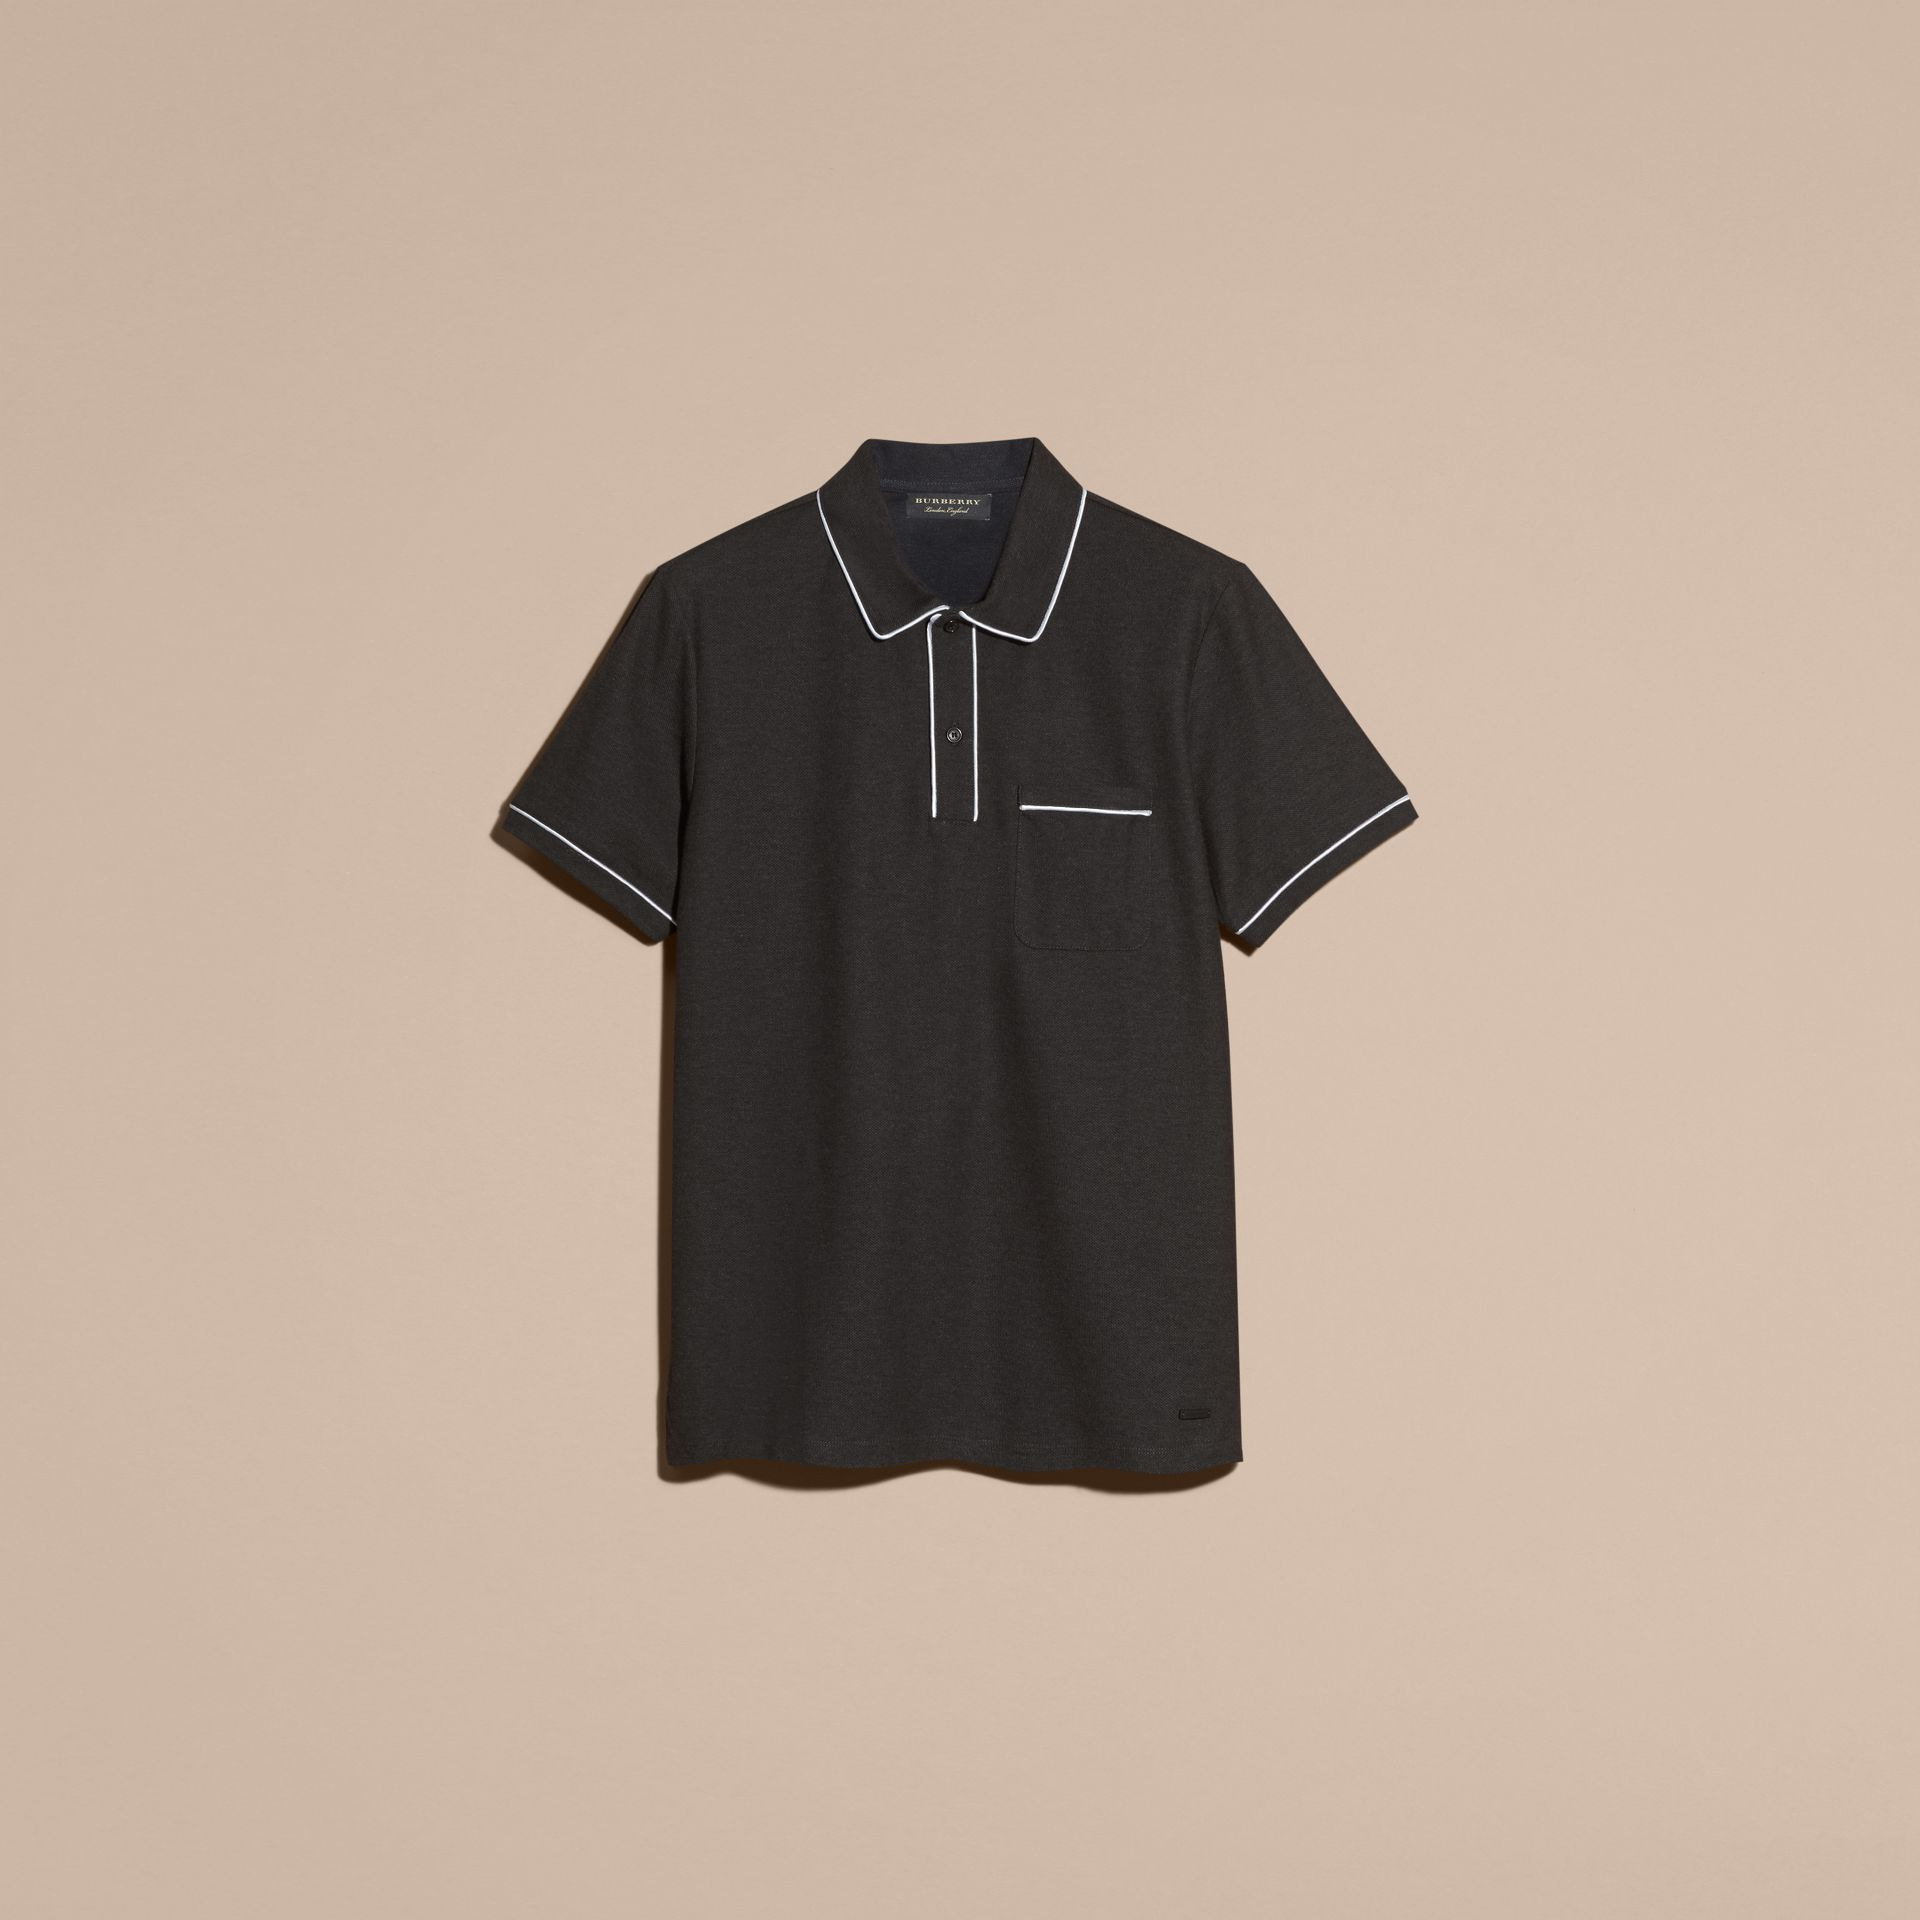 Charcoal Piped Cotton Piqué Polo Shirt Charcoal - gallery image 3